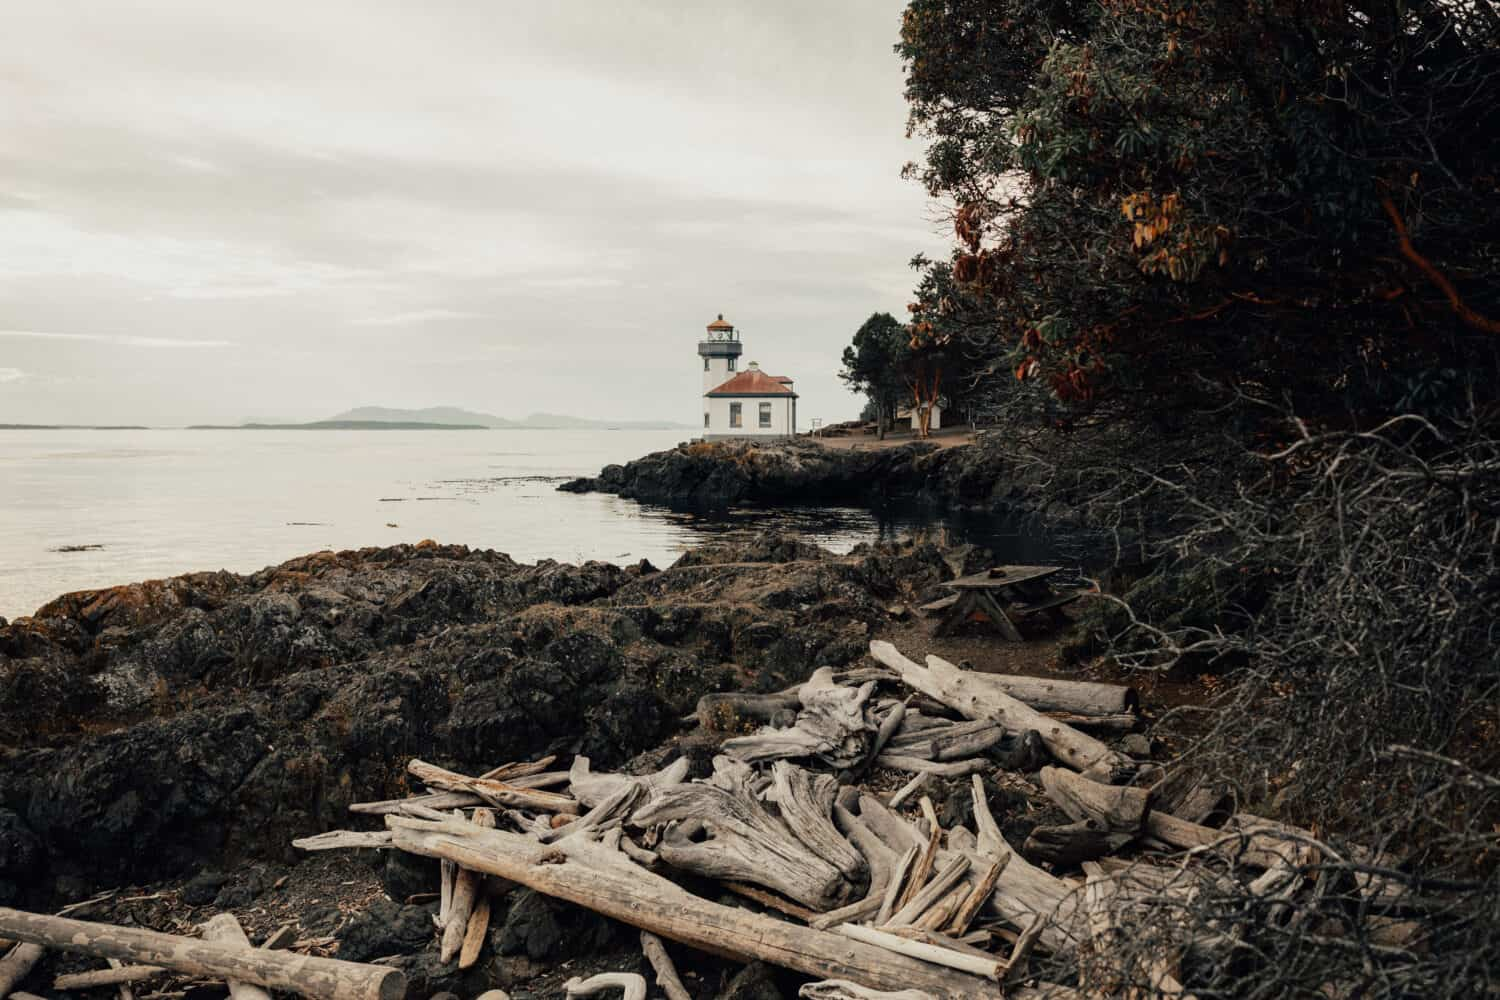 Best Things To Do In Washington State - Visit San Juan Islands Lime Kiln State Park - TheMandagies.com